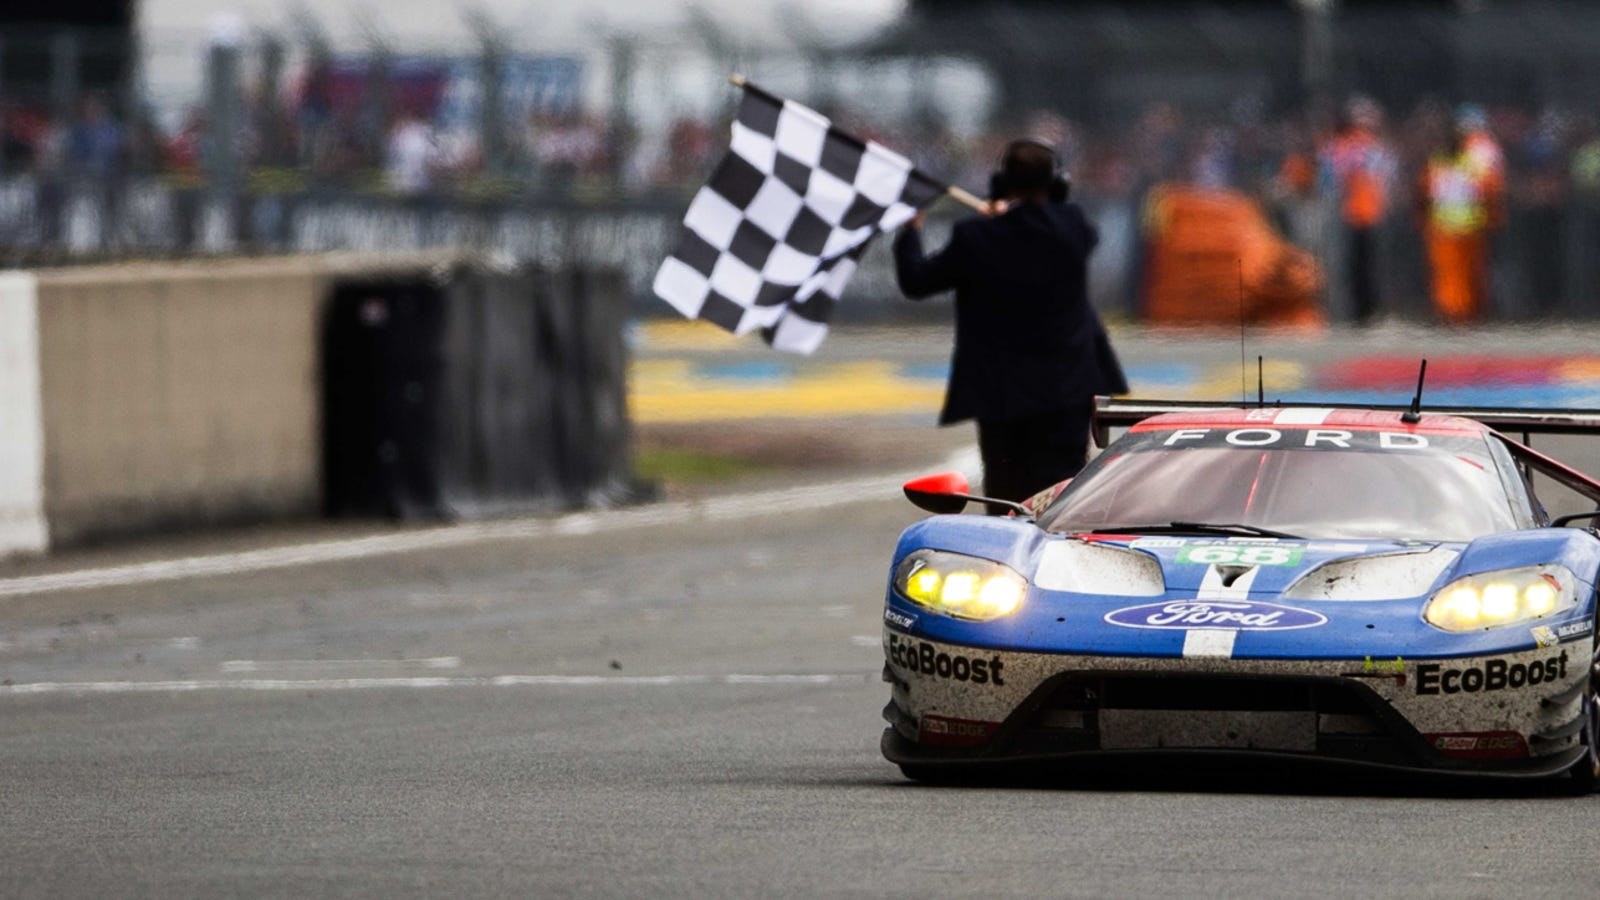 Le Mans Results Unchanged After Ford And Ferrari Teams Protest Each Other